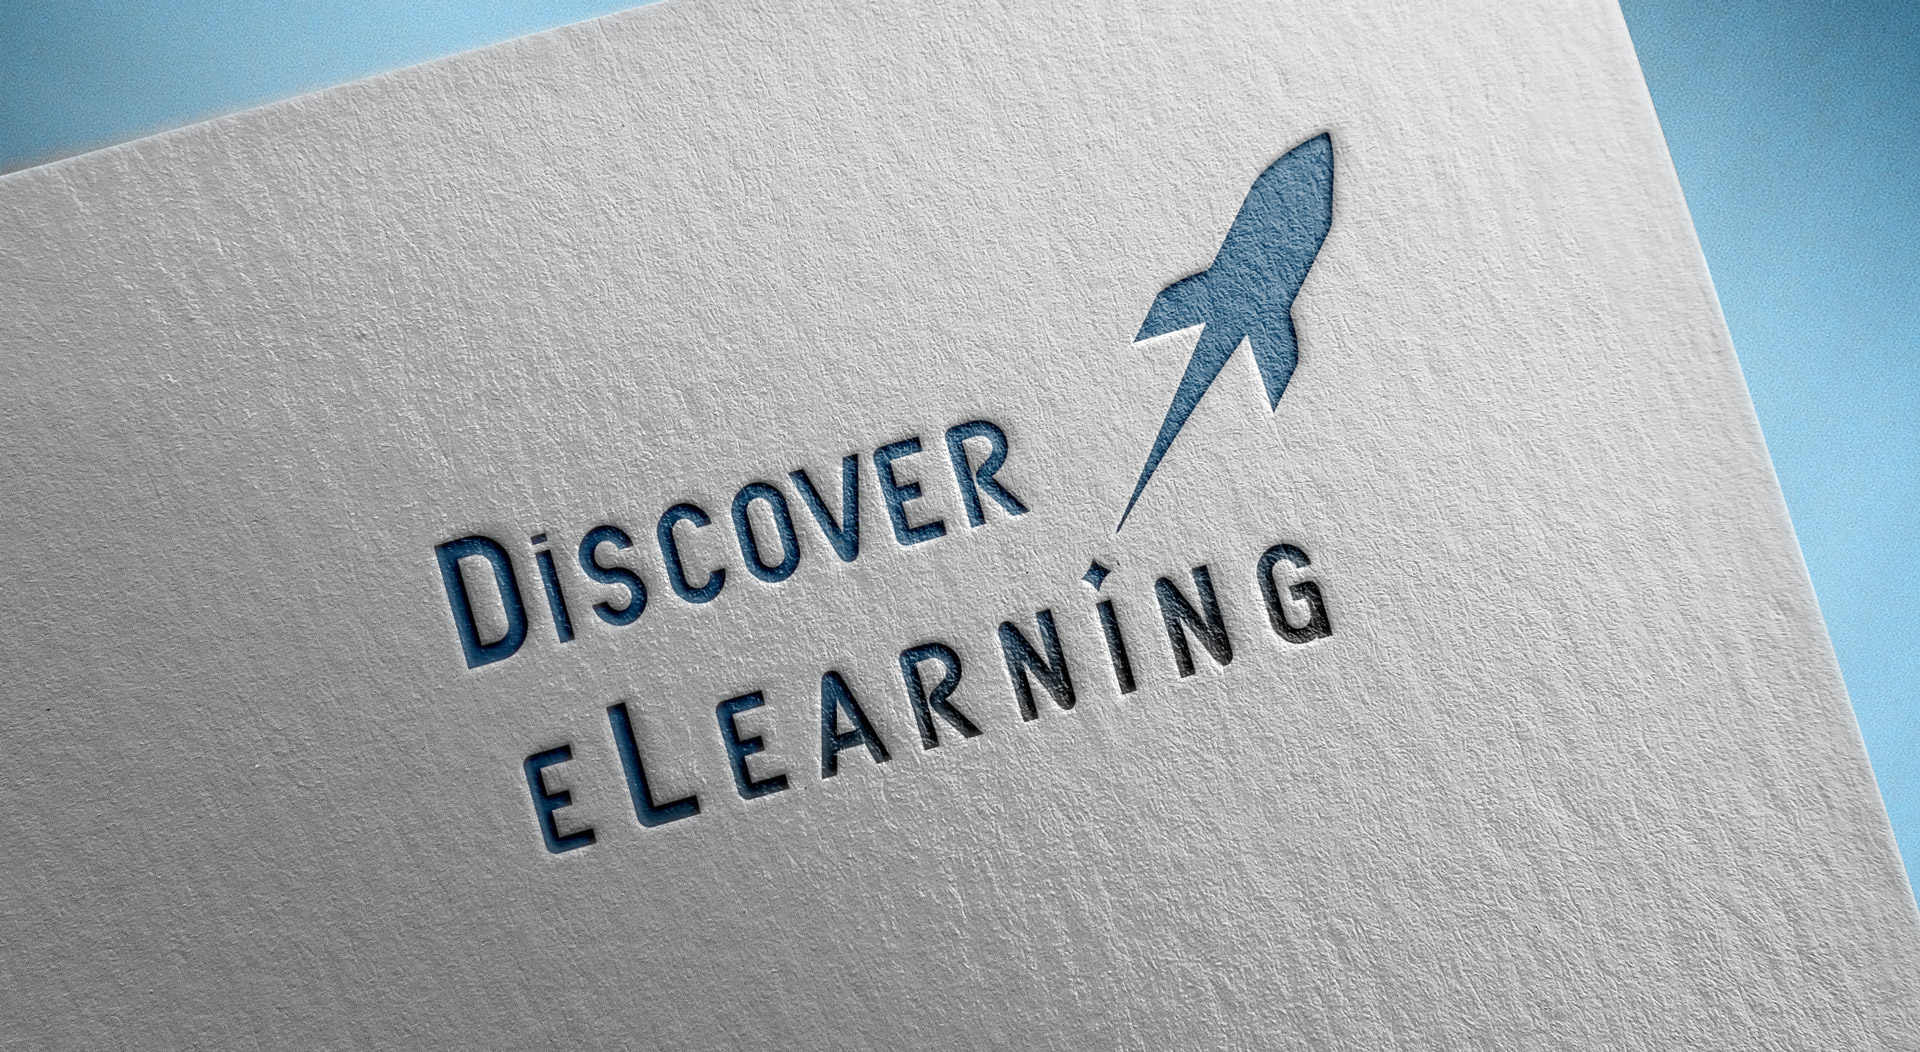 Welcome To Discover eLearning Ltd. A Different Kind of eLearning Company.